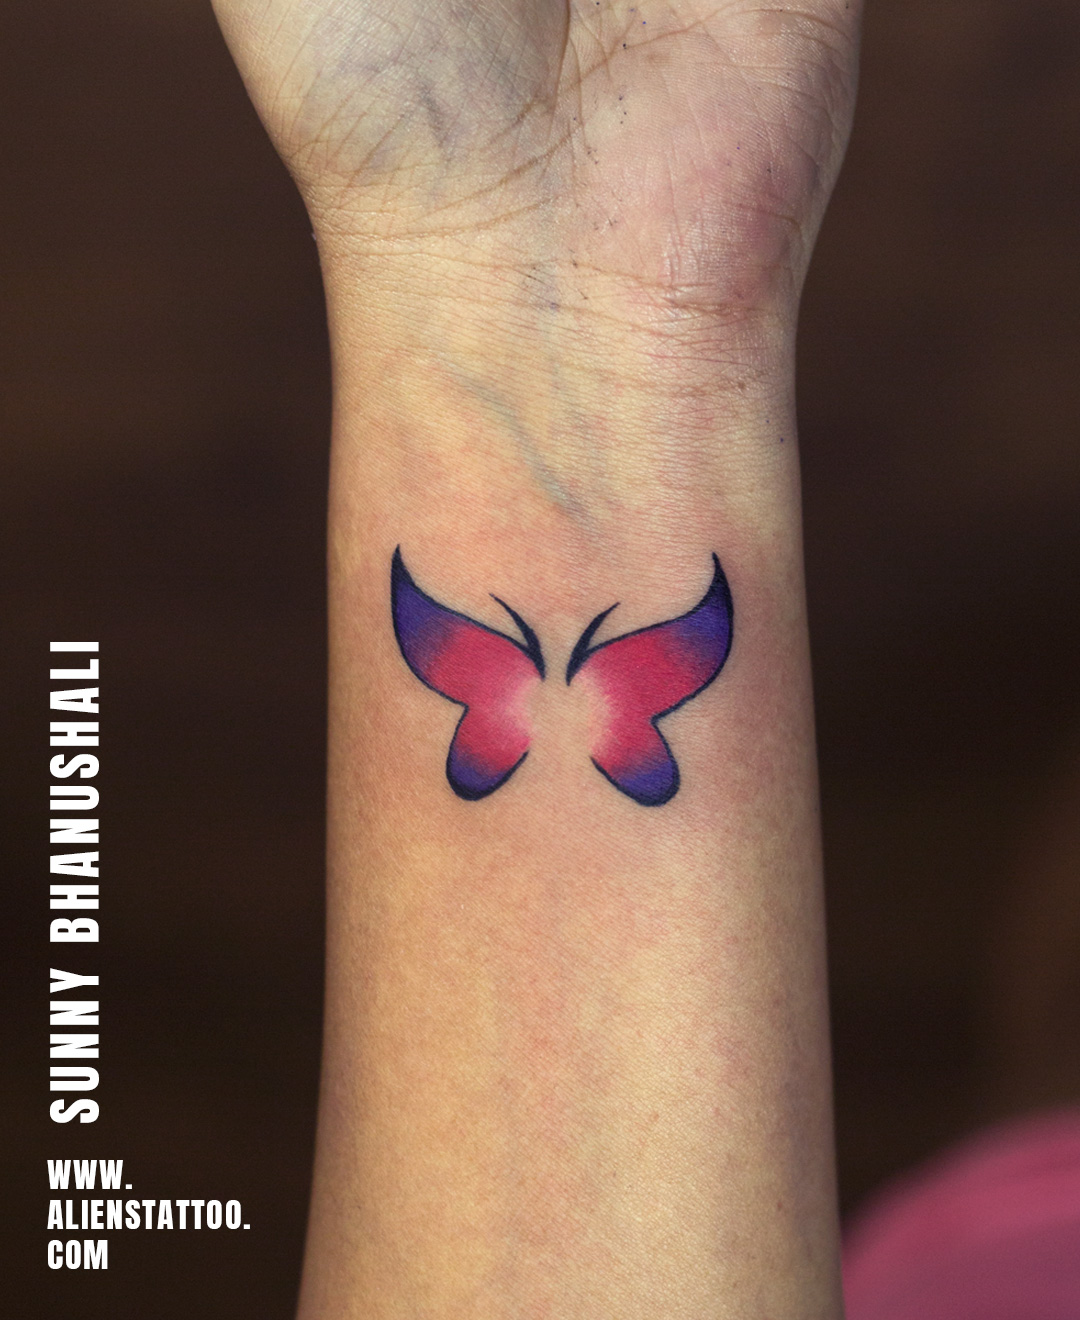 Butterfly Color Tattoo - Aliens Tattoo